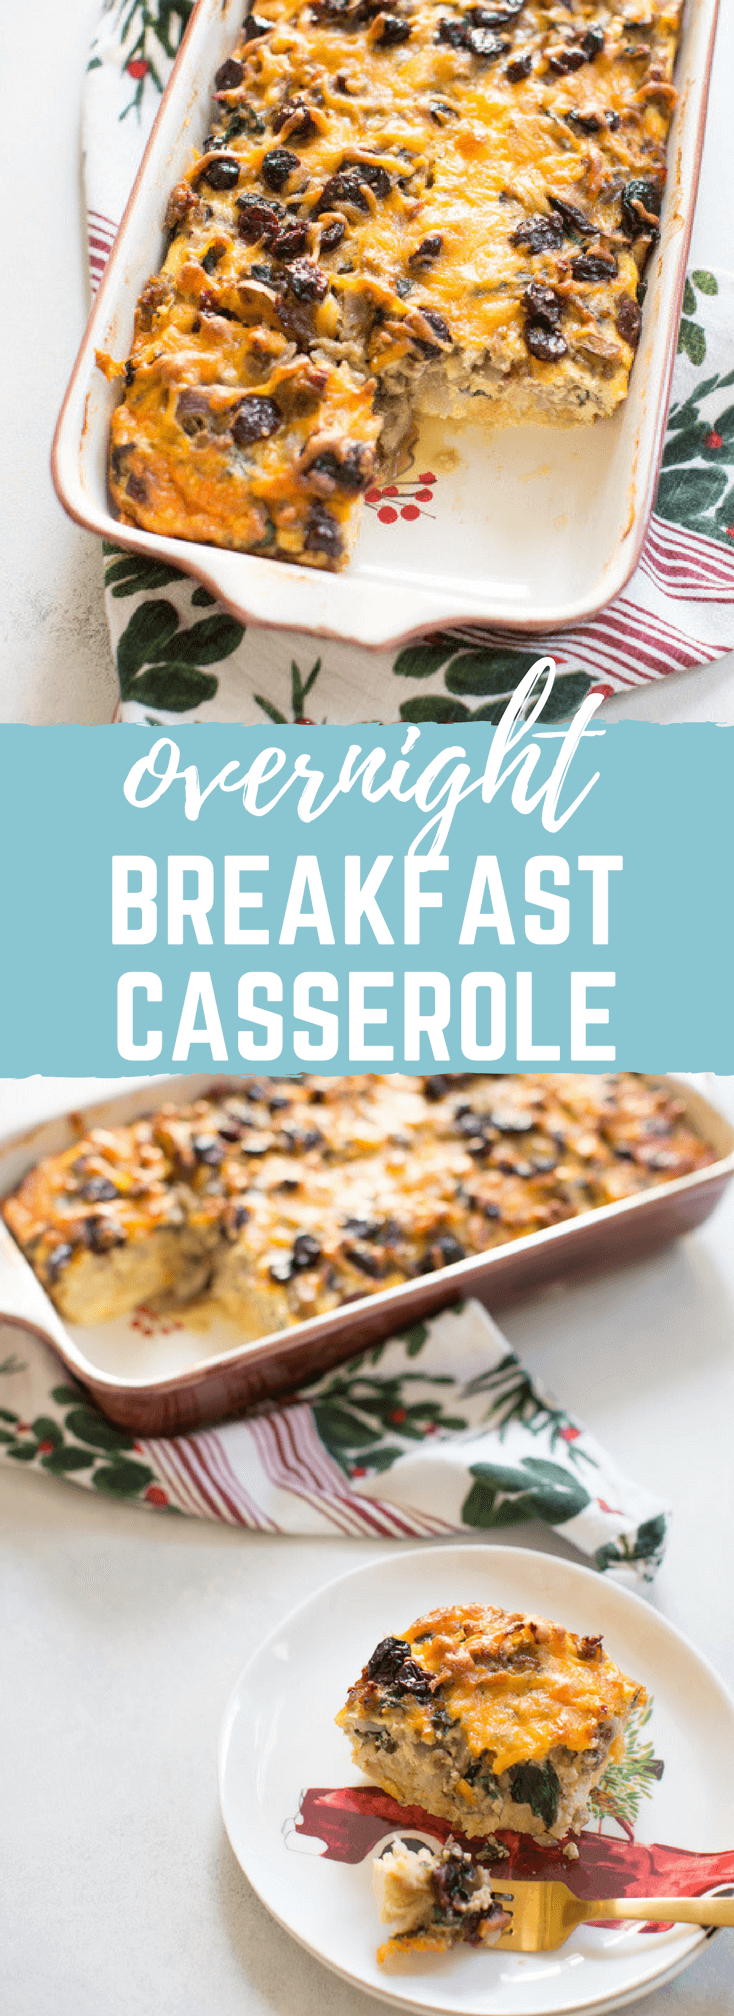 Christmas Breakfast Strata an easy overnight breakfast casserole made with eggs, sourdough bread, chard, mushrooms, and all dat cheese with cherries on top!